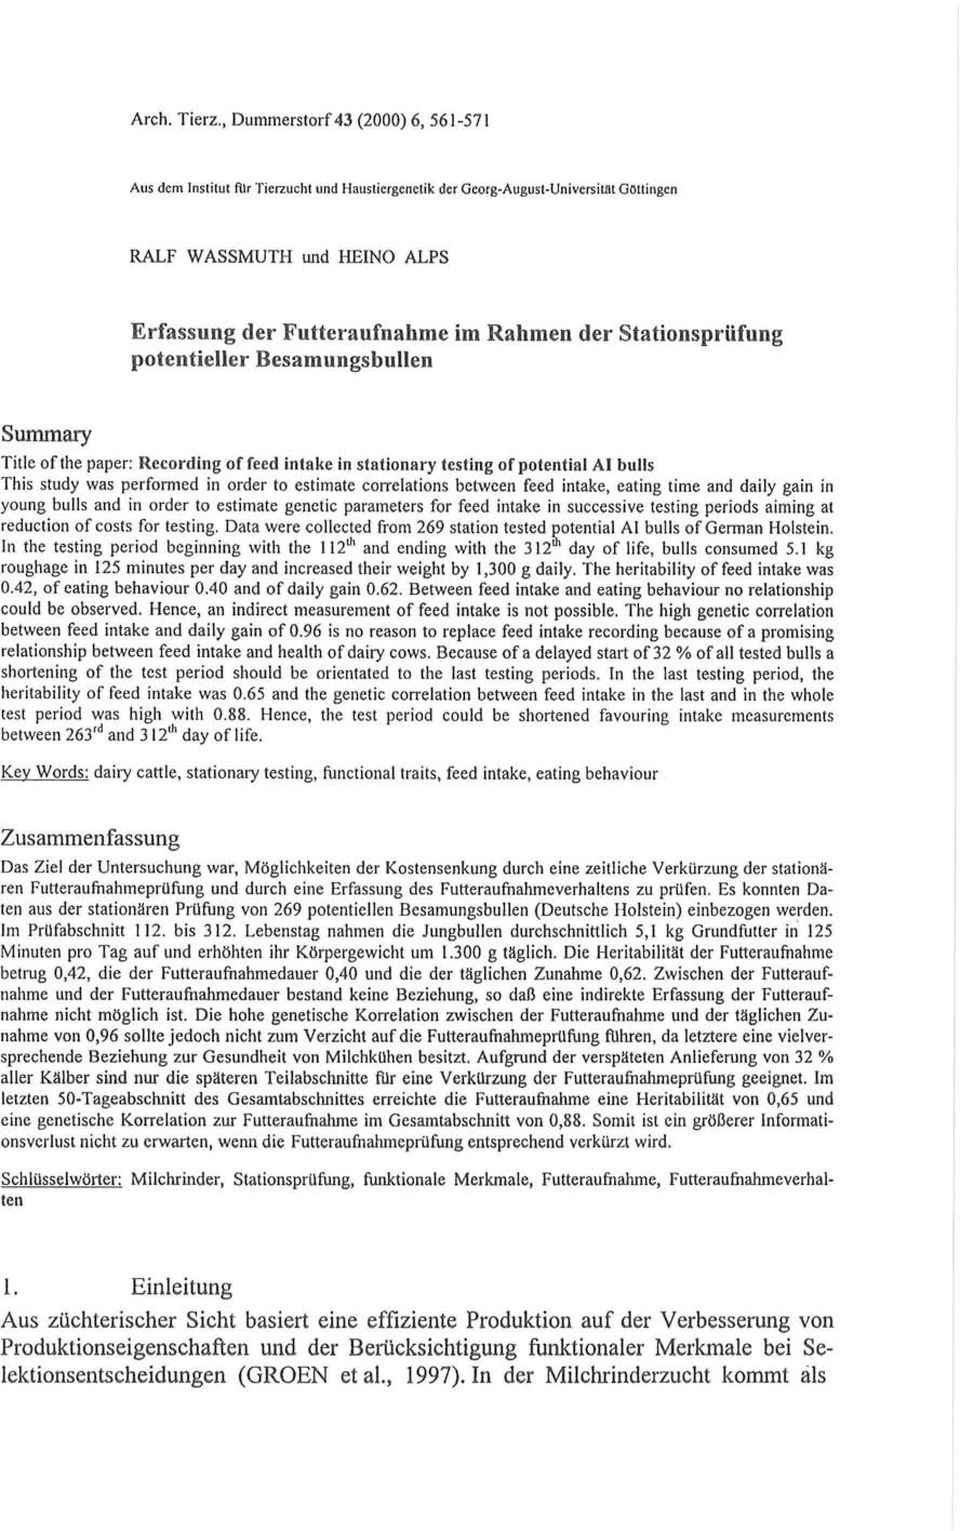 Stationsprüfung potentieller Besamungsbullen Summary Title ofthe paper: Recording of feed intake in stationary testing of potential AI bulls This study was performed in order to estimate correlations